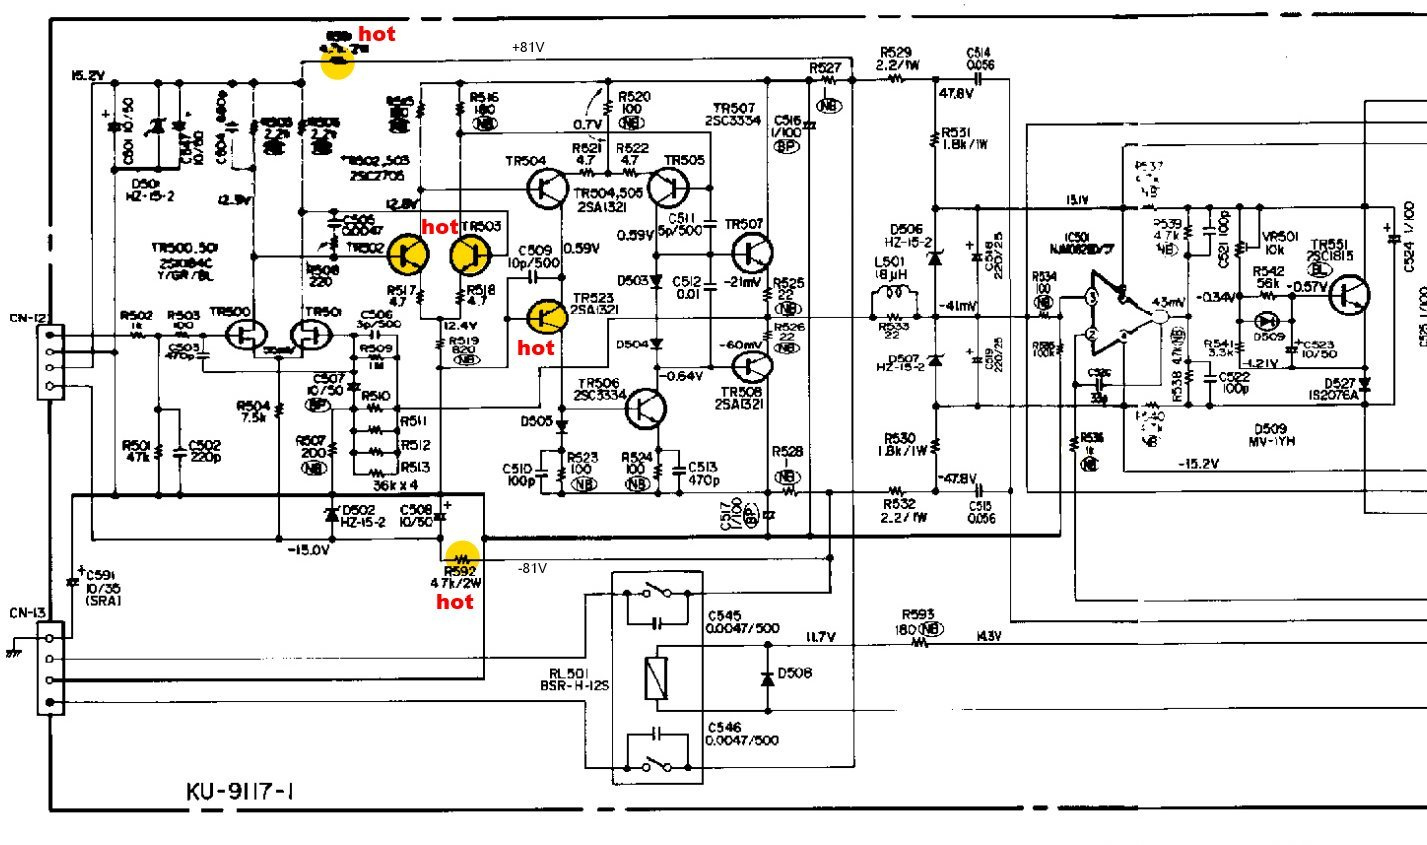 06 Lincoln Town Car Wiring Diagram Diagrams Ford Fusion Fuse besides 96 Ford Mustang Gt Mach 460 Wiring Harness likewise 2002 Dodge Dakota Wiring Diagram as well Frequenzweiche 48222 moreover Ford Speaker Wire Diagram. on car stereo